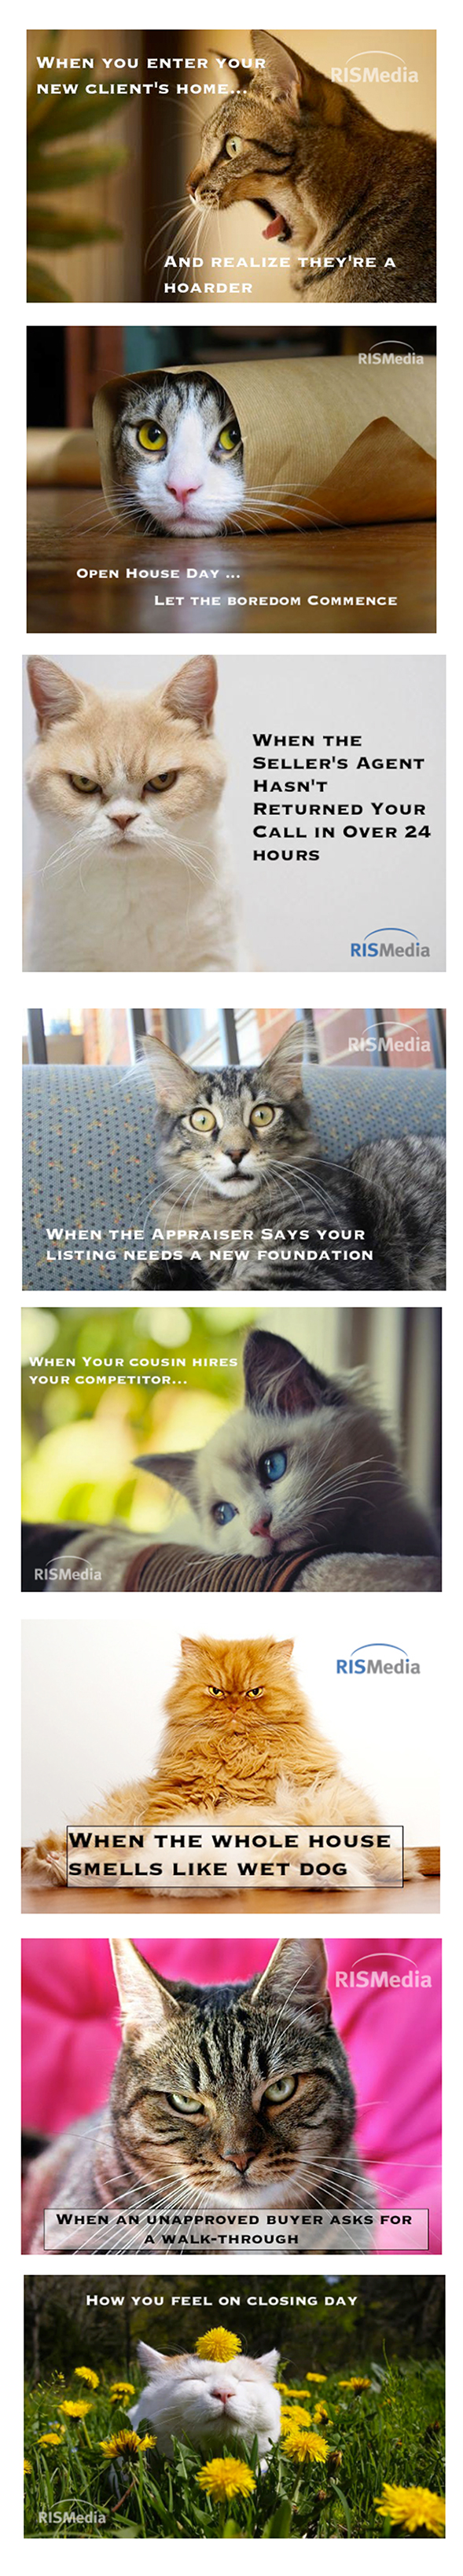 8 Real Estate Cat Memes to Live By | RISMedia's Housecall